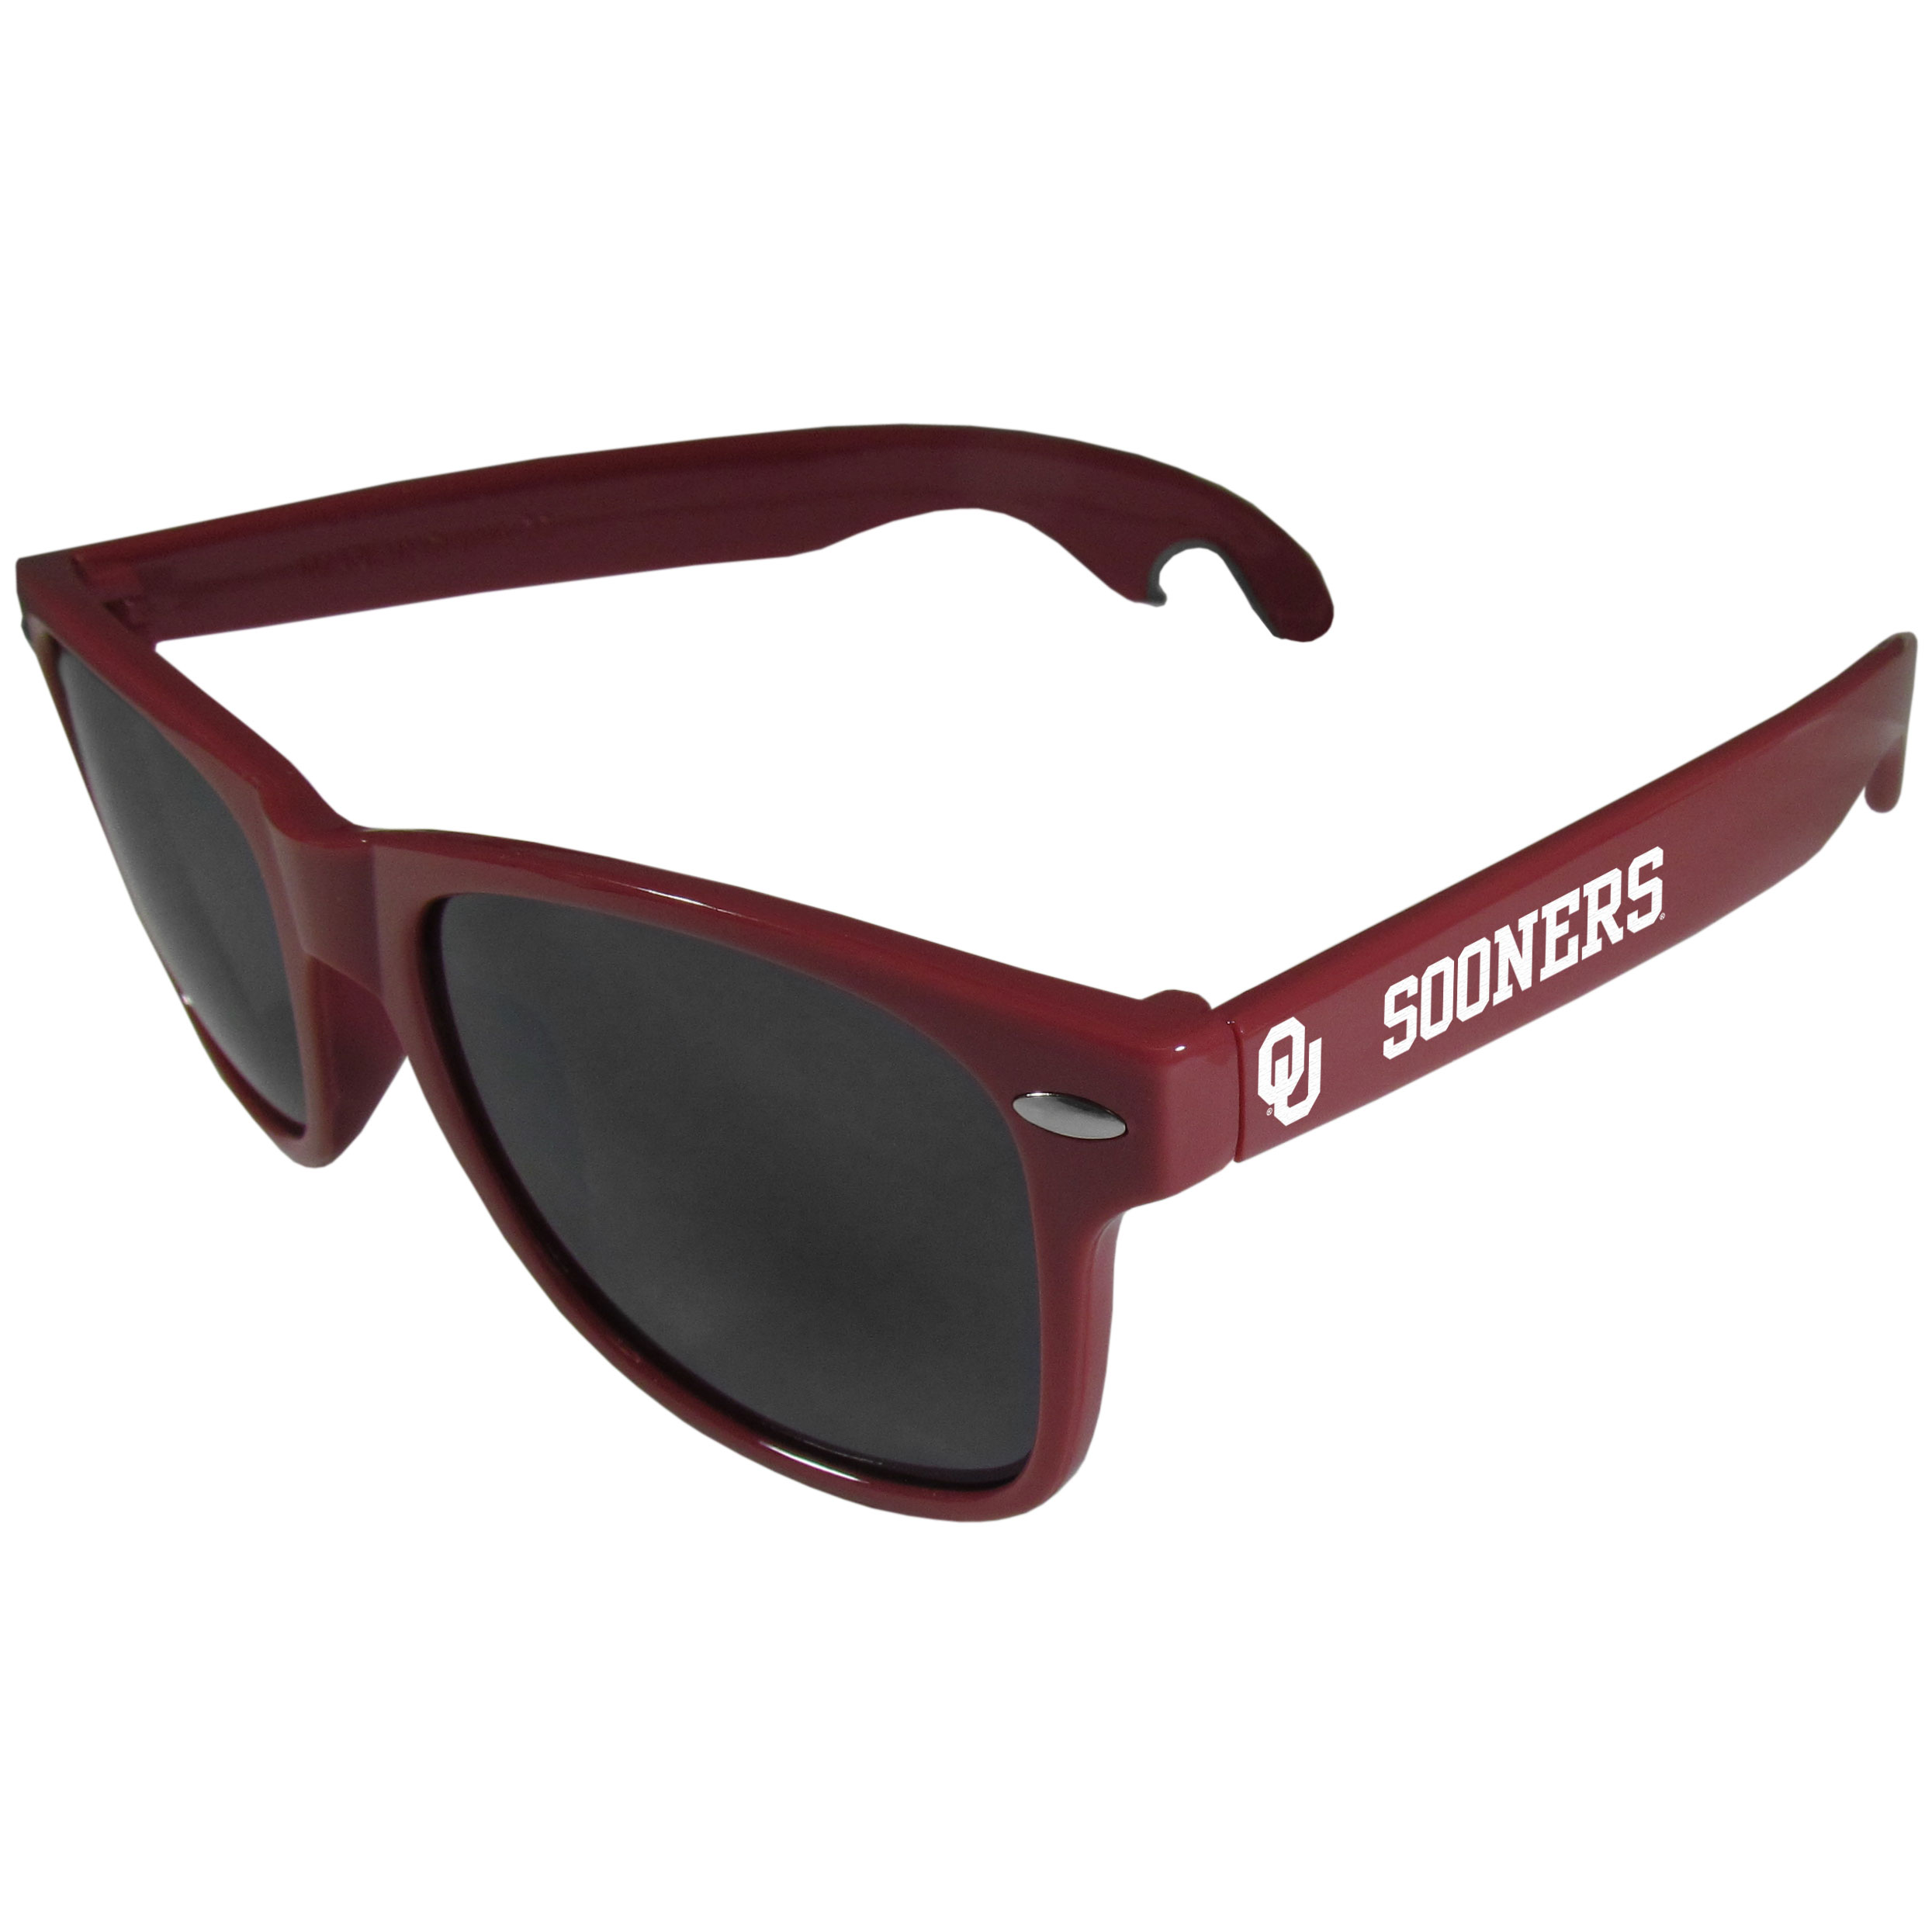 Oklahoma Sooners Beachfarer Bottle Opener Sunglasses, Maroon - Seriously, these sunglasses open bottles! Keep the party going with these amazing Oklahoma Sooners bottle opener sunglasses. The stylish retro frames feature team designs on the arms and functional bottle openers on the end of the arms. Whether you are at the beach or having a backyard BBQ on game day, these shades will keep your eyes protected with 100% UVA/UVB protection and keep you hydrated with the handy bottle opener arms.